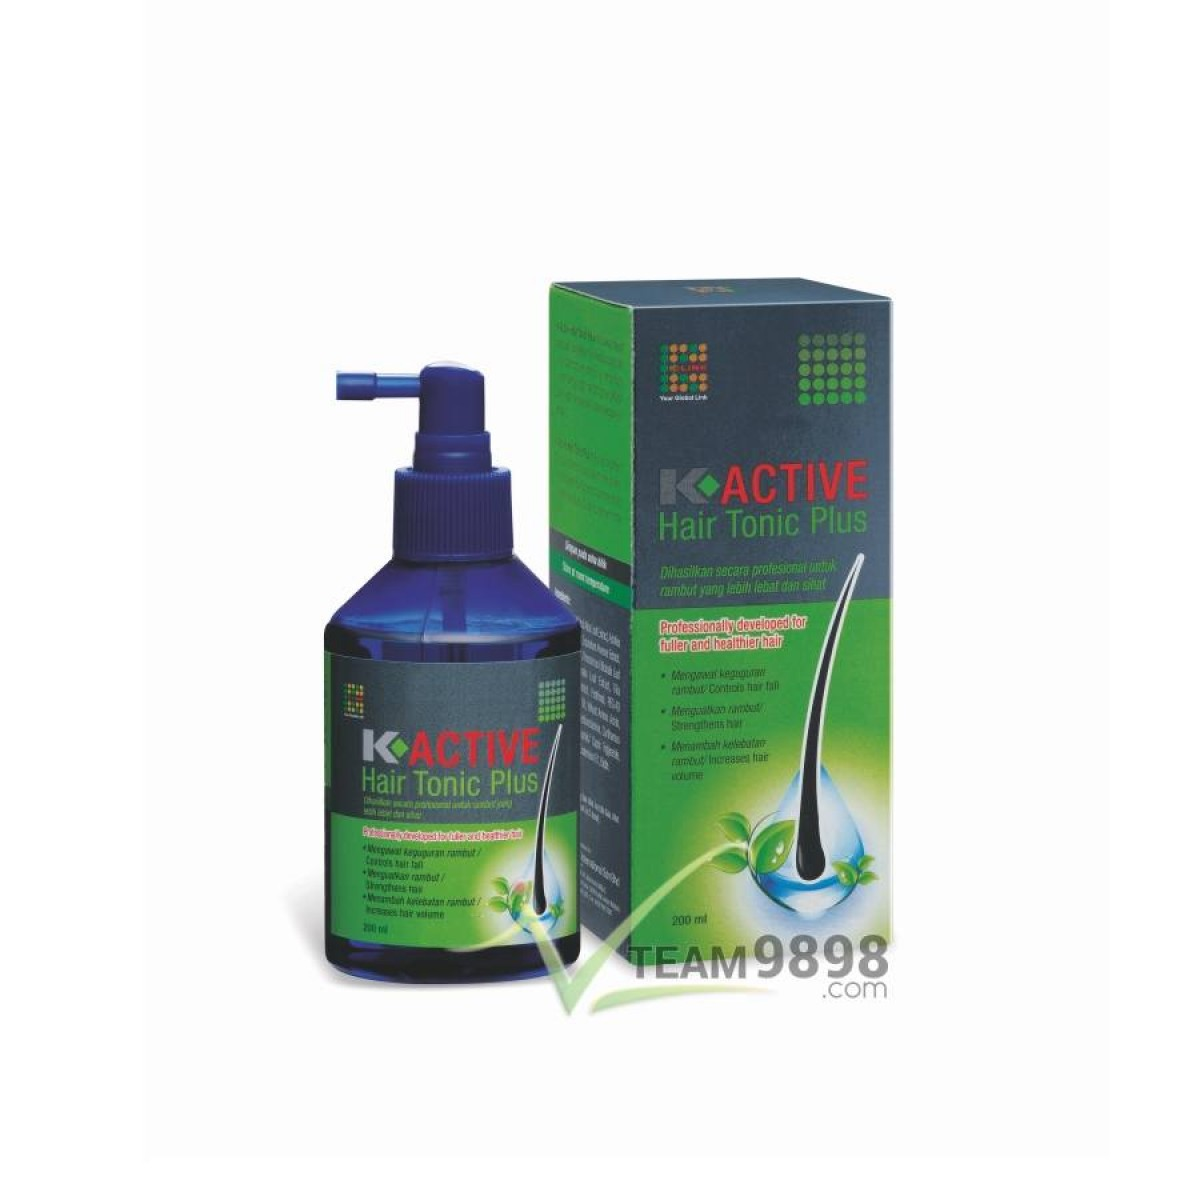 K-Active Hair Tonic Plus